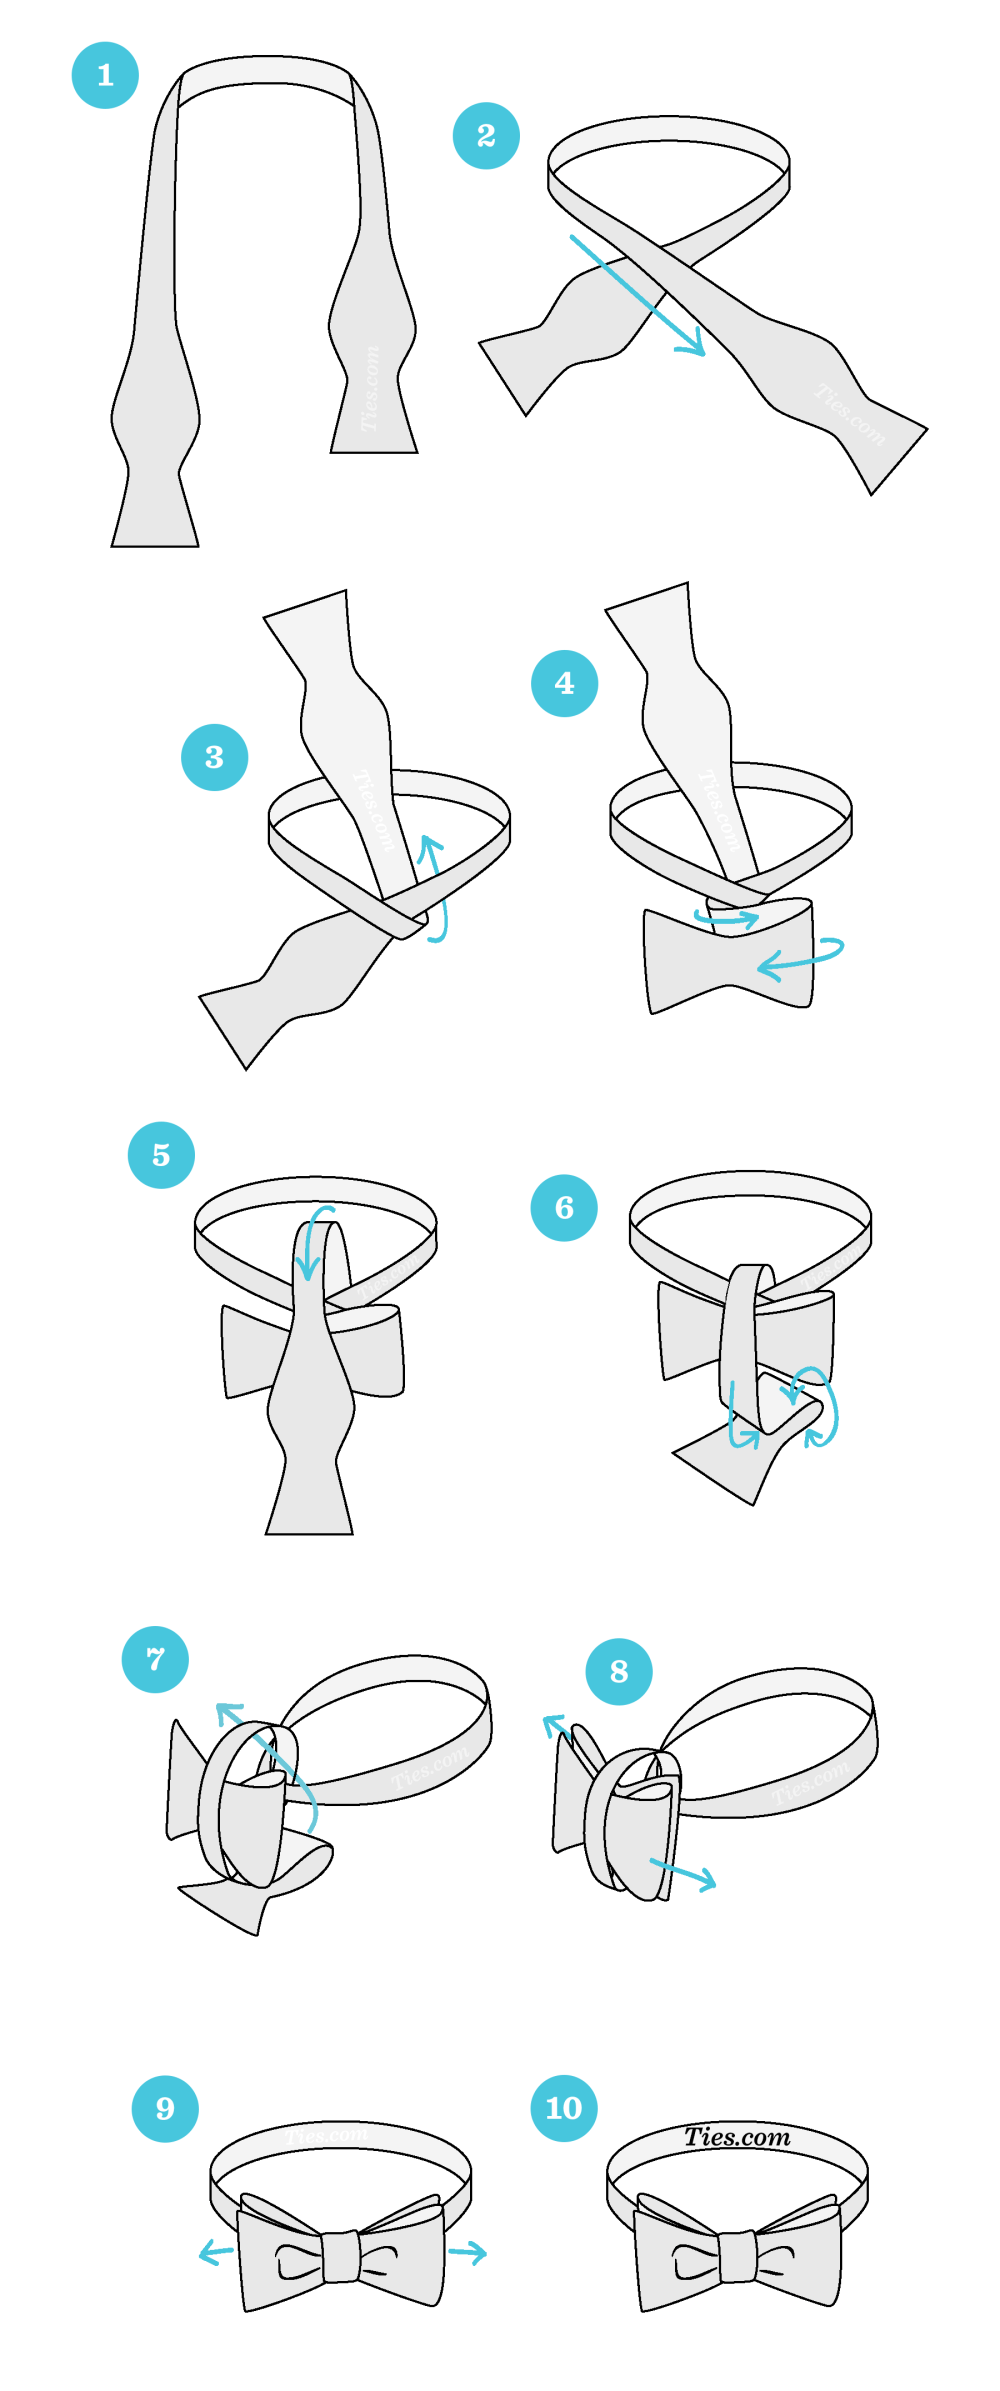 medium resolution of 1 start with the bowtie lying face up adjust the bowtie so right side is shorter than the left the end on the left will be referred to as a and the